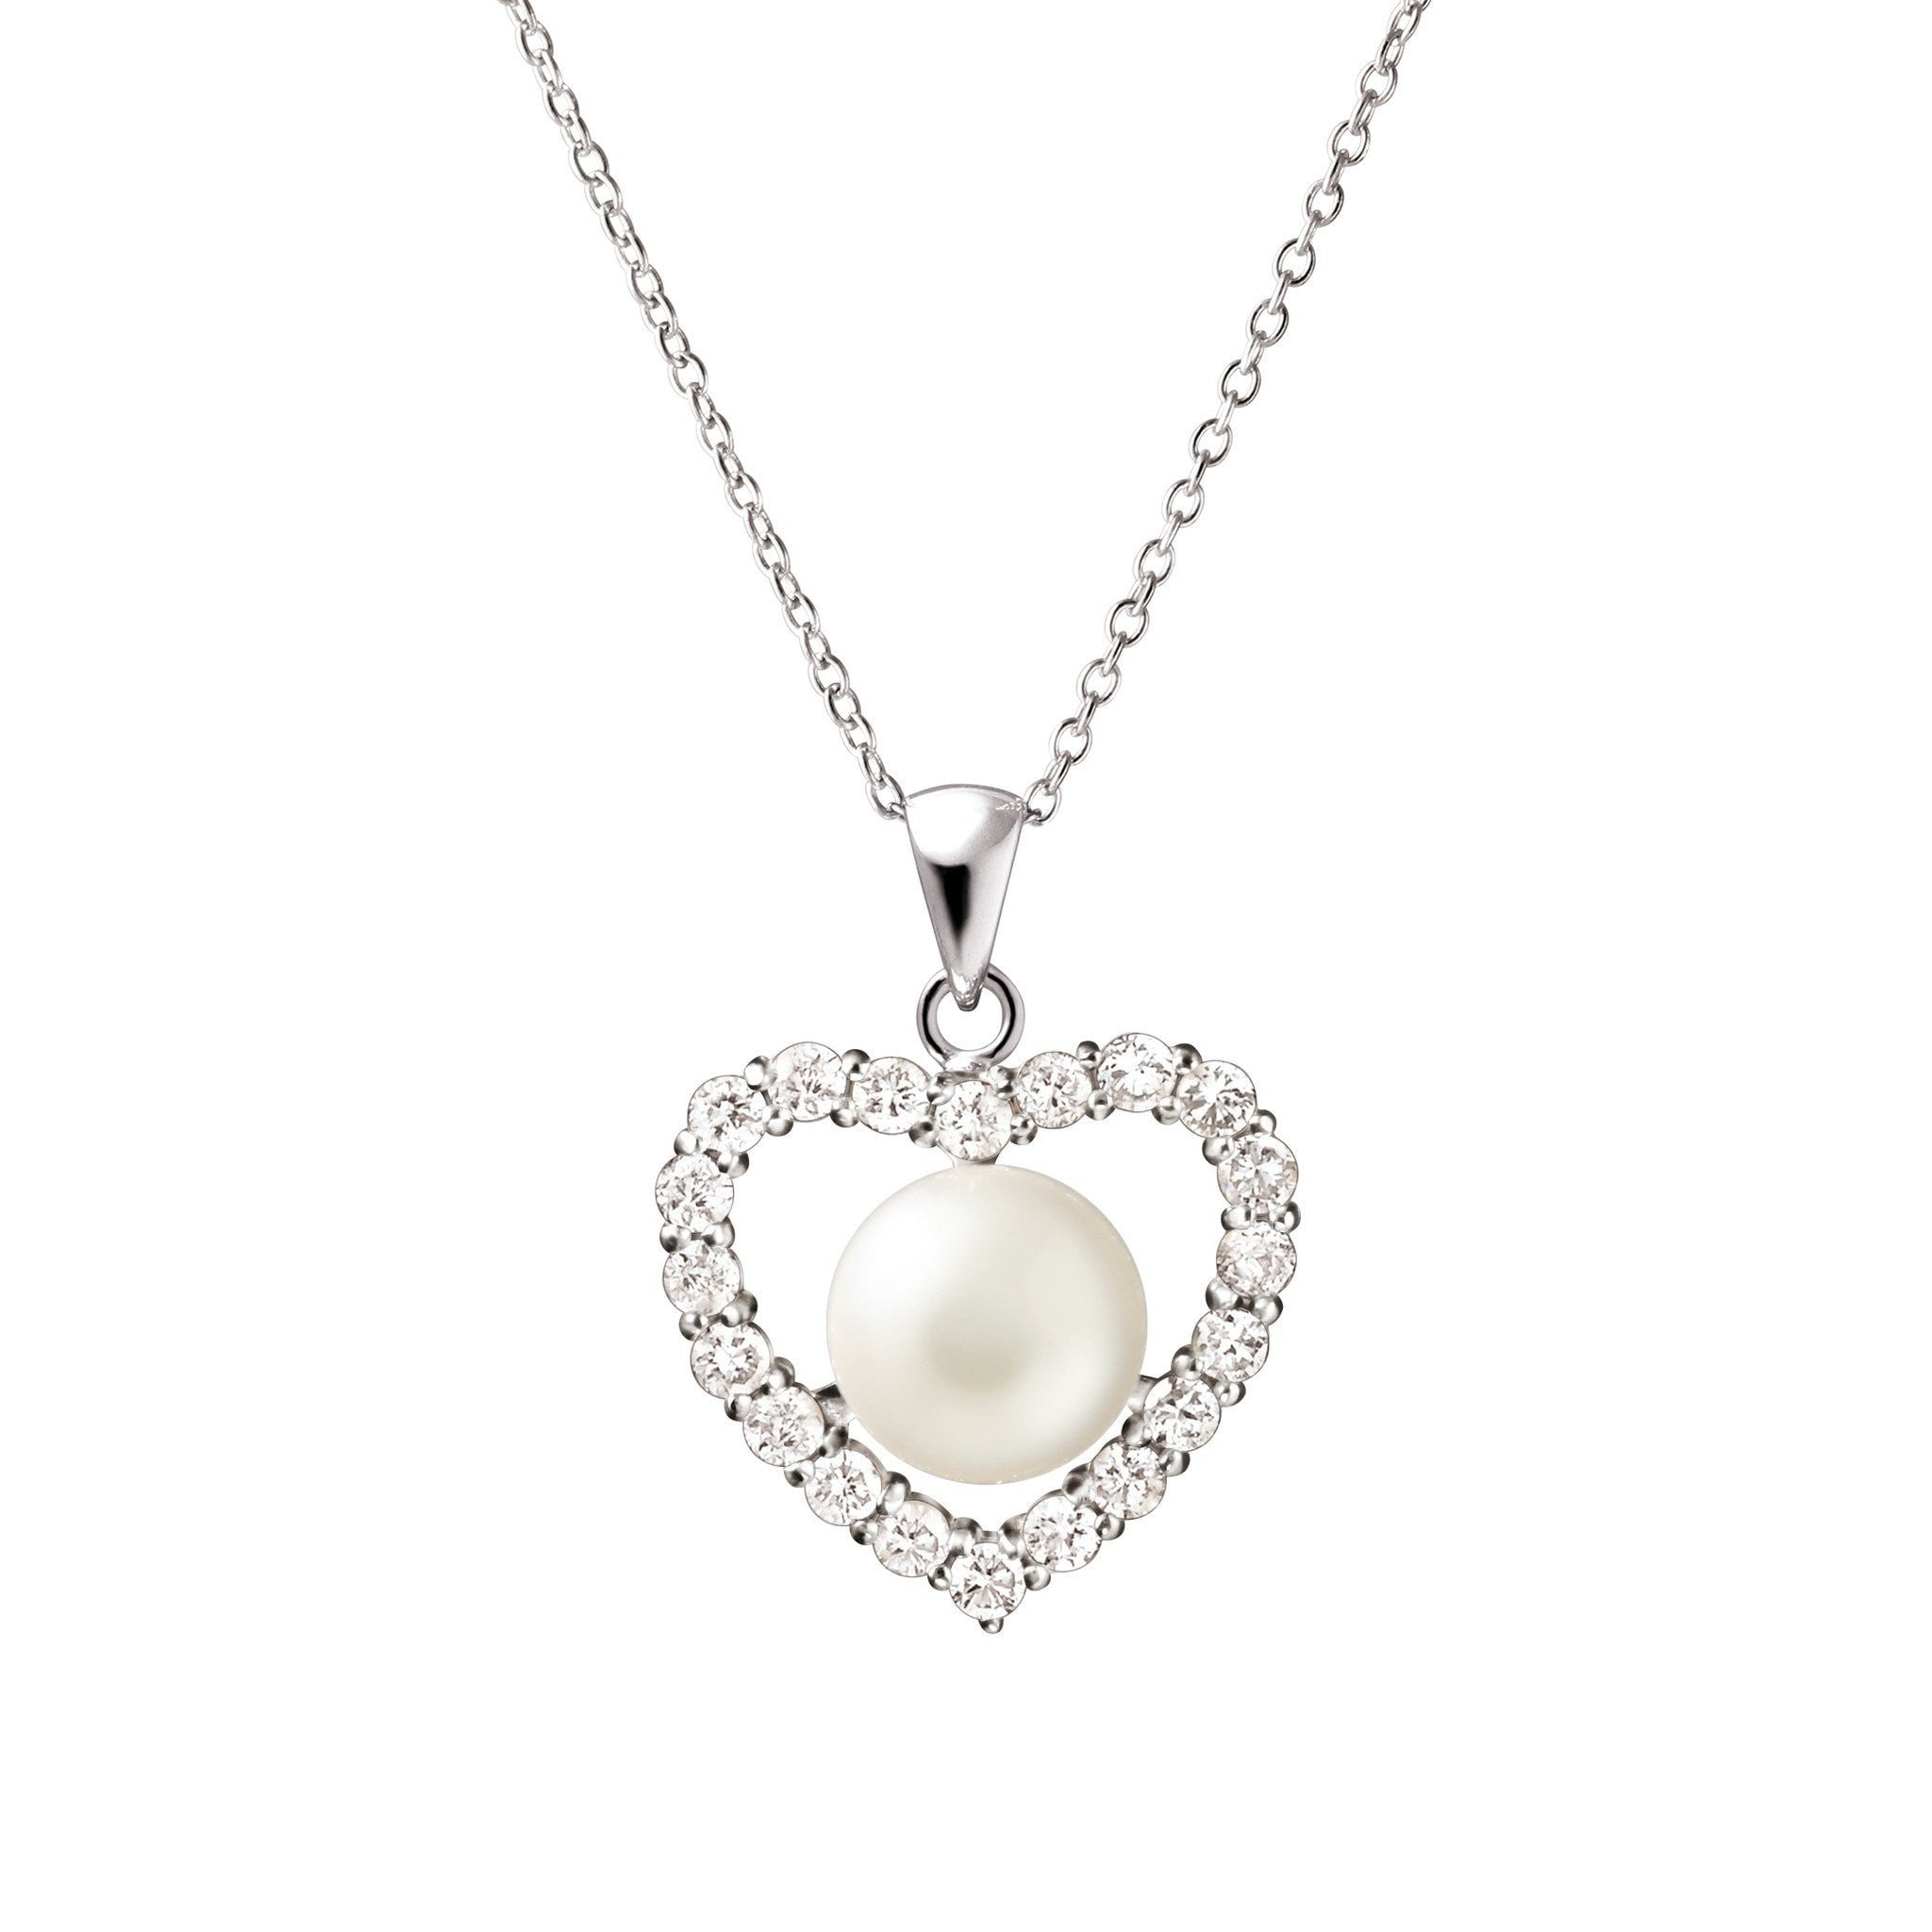 Beautiful large white natural pearl heart pendant necklace cz beautiful large white natural pearl heart pendant necklace cz sterling silver mozeypictures Image collections